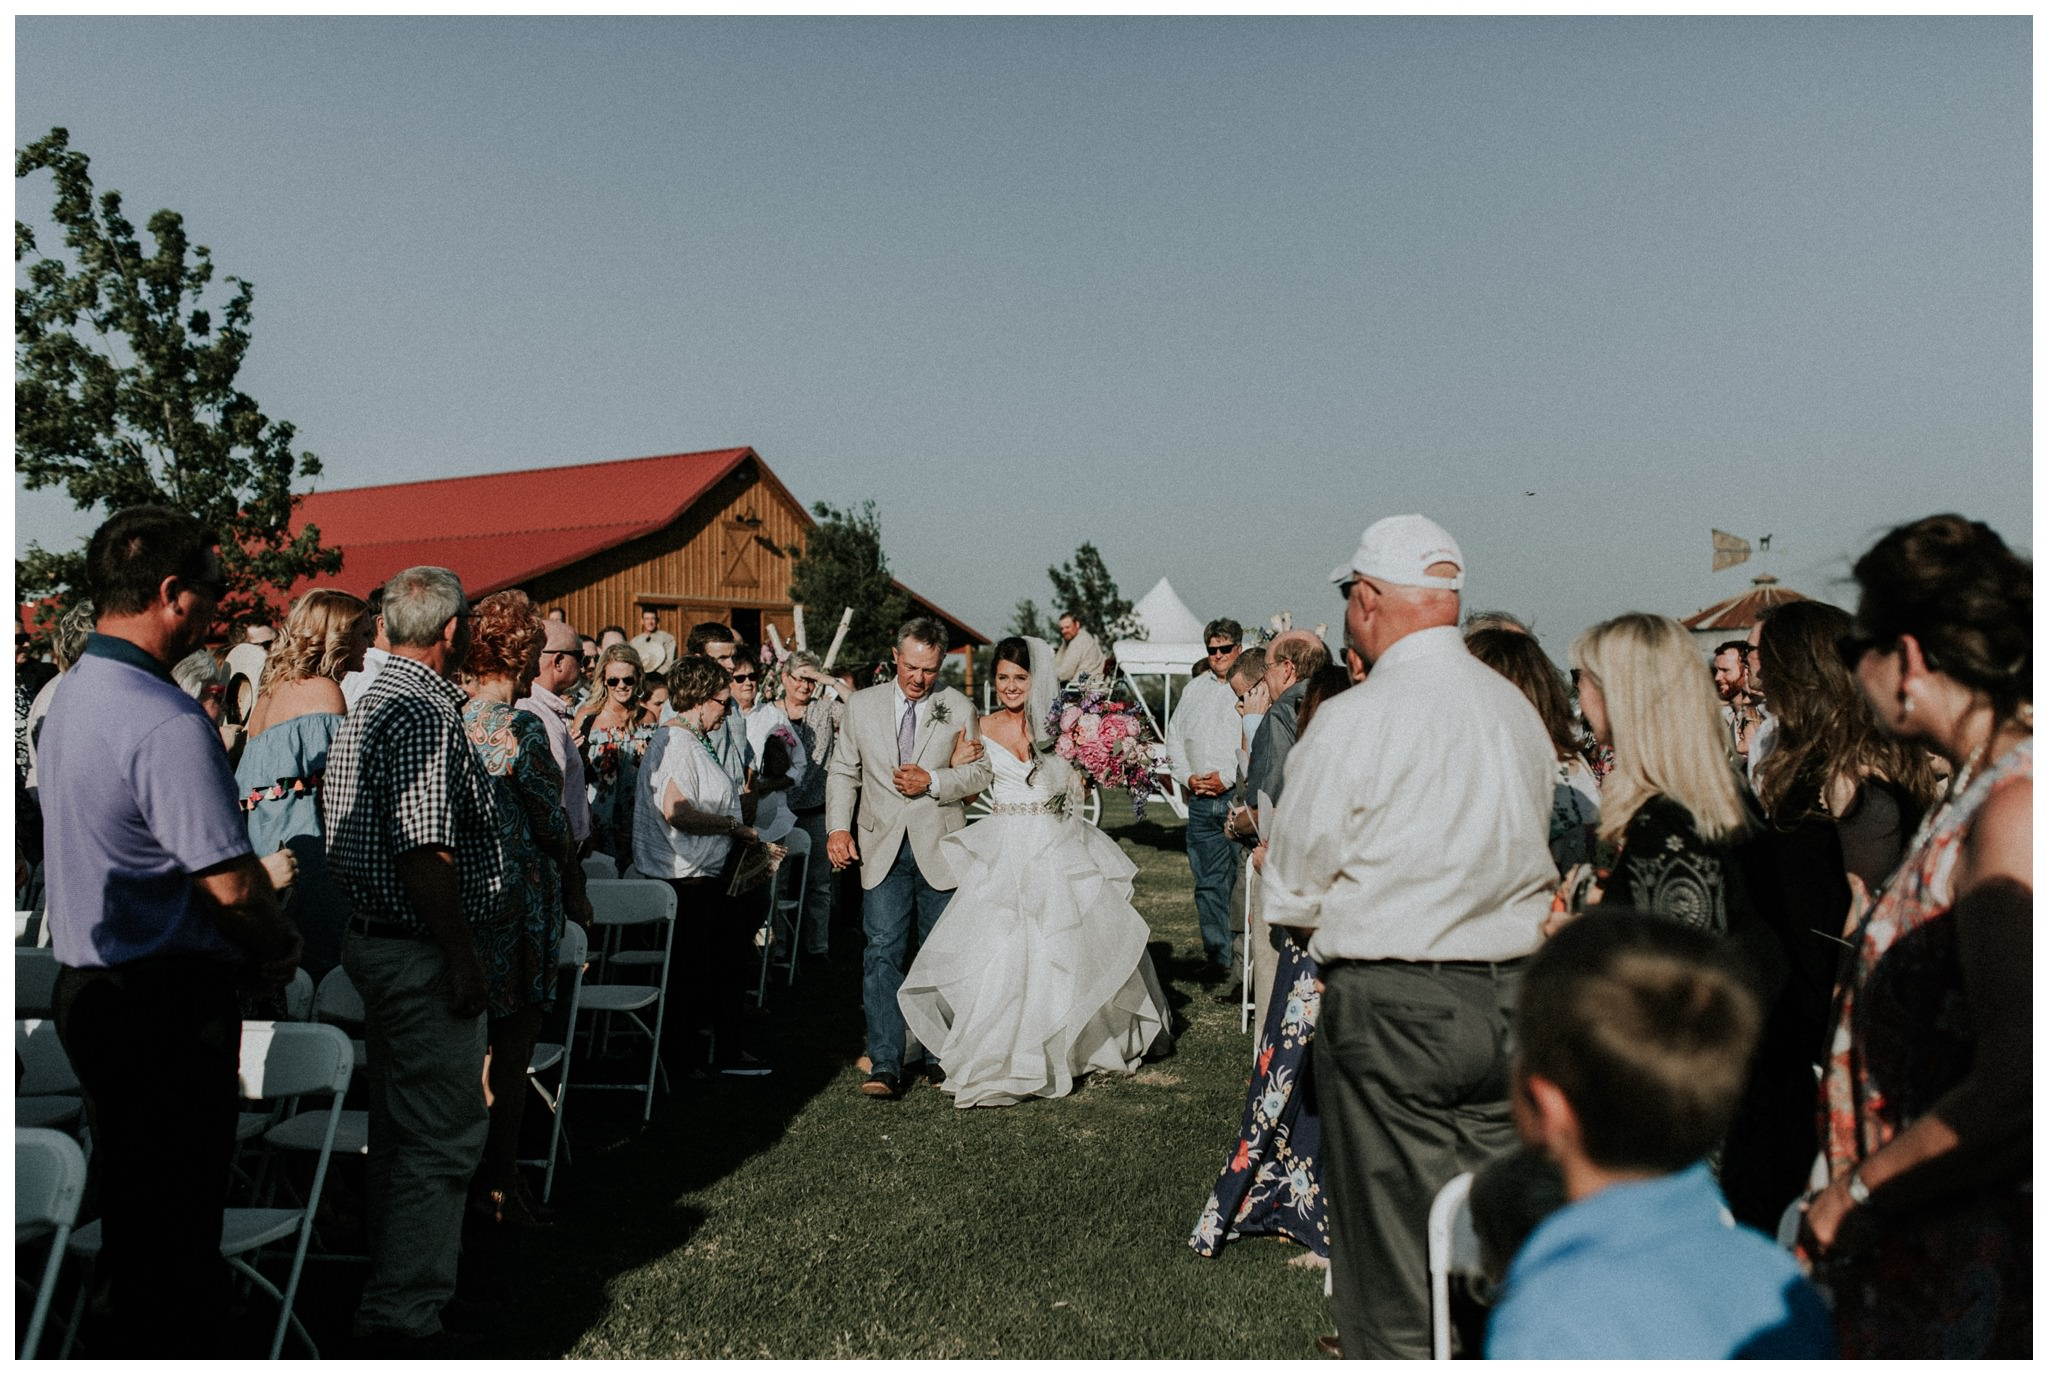 Whimsical Ranch West Texas Wedding - DIY Farm Wedding-8405.jpg